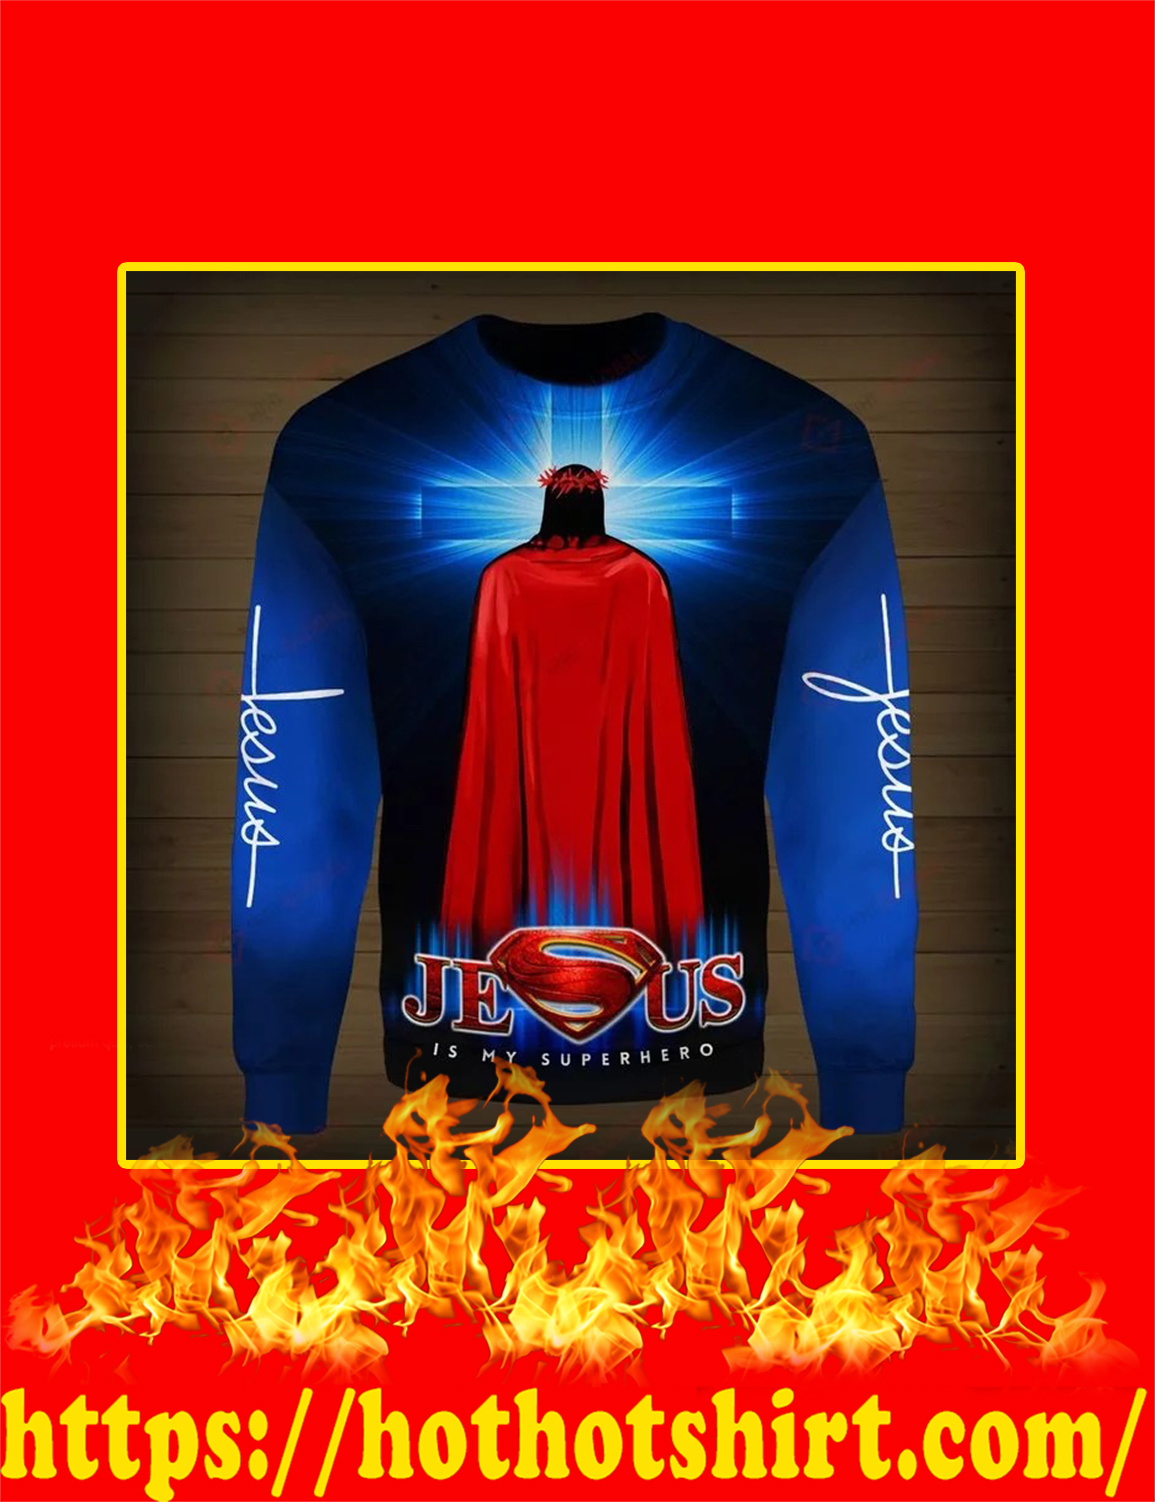 Jesus Is My Superhero 3d sweatshirt